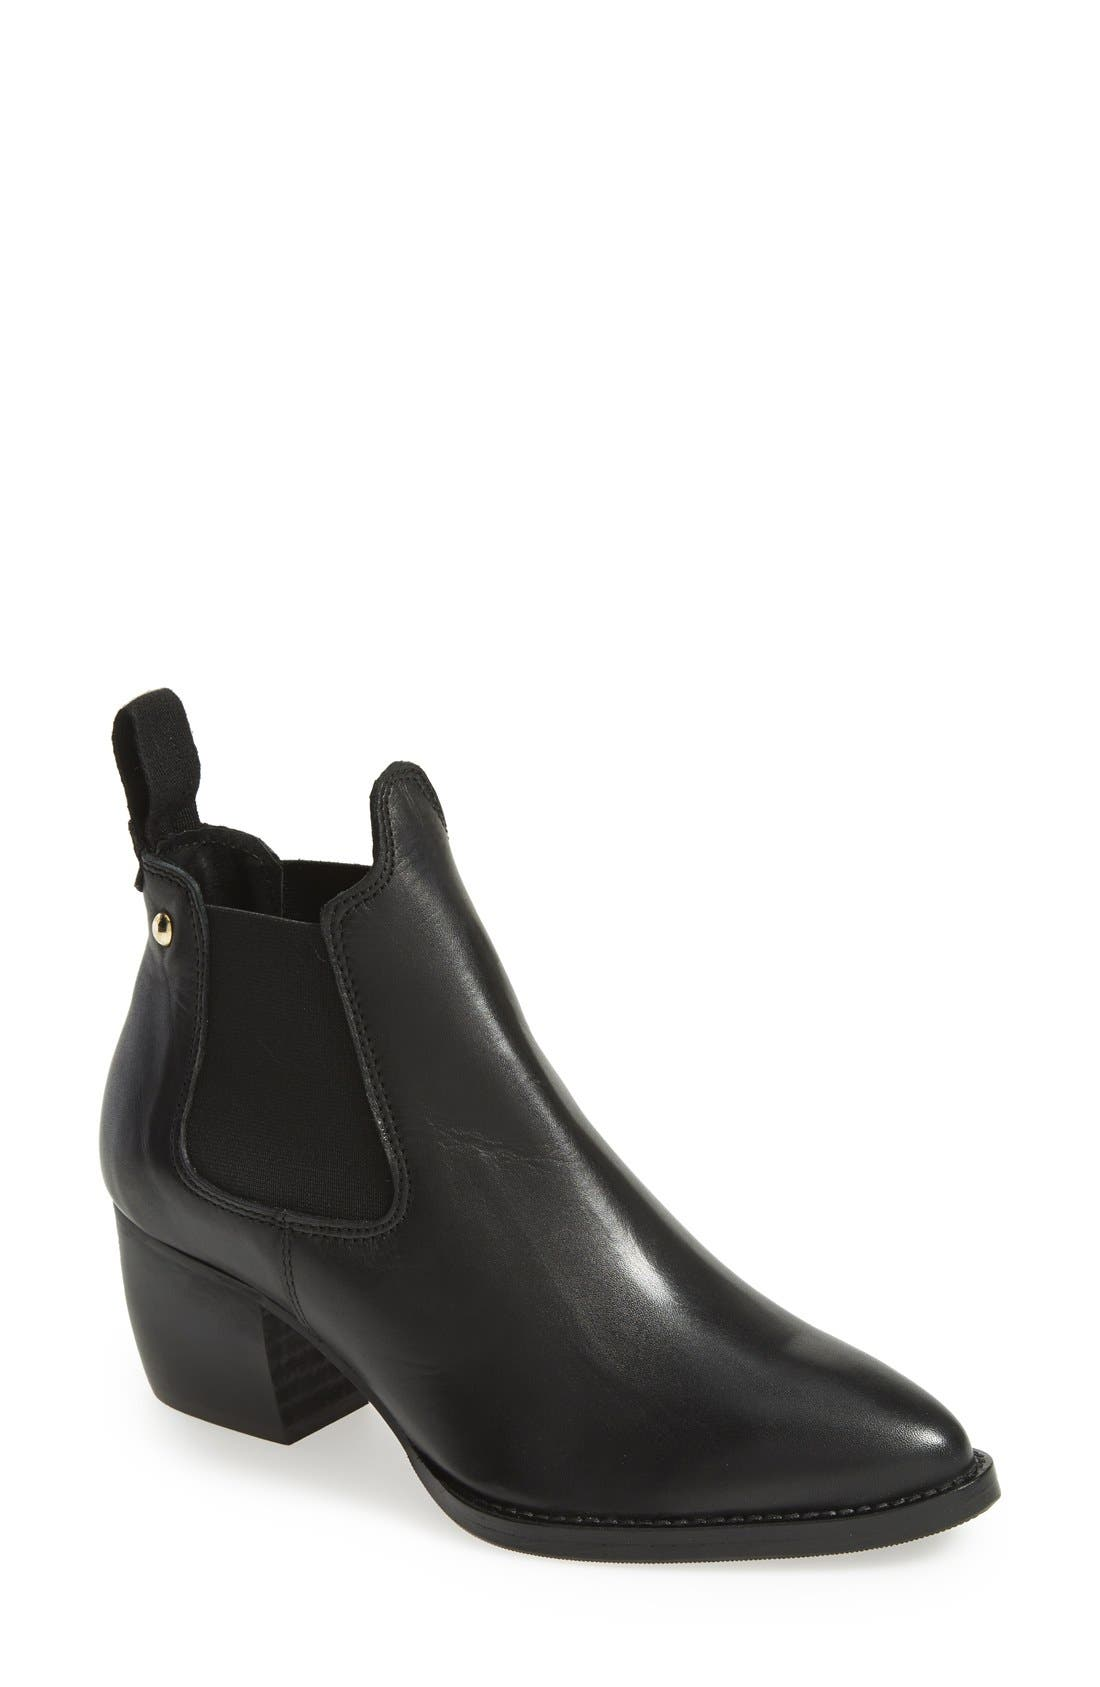 TOPSHOP, 'Margot' Leather Ankle Bootie, Main thumbnail 1, color, 001